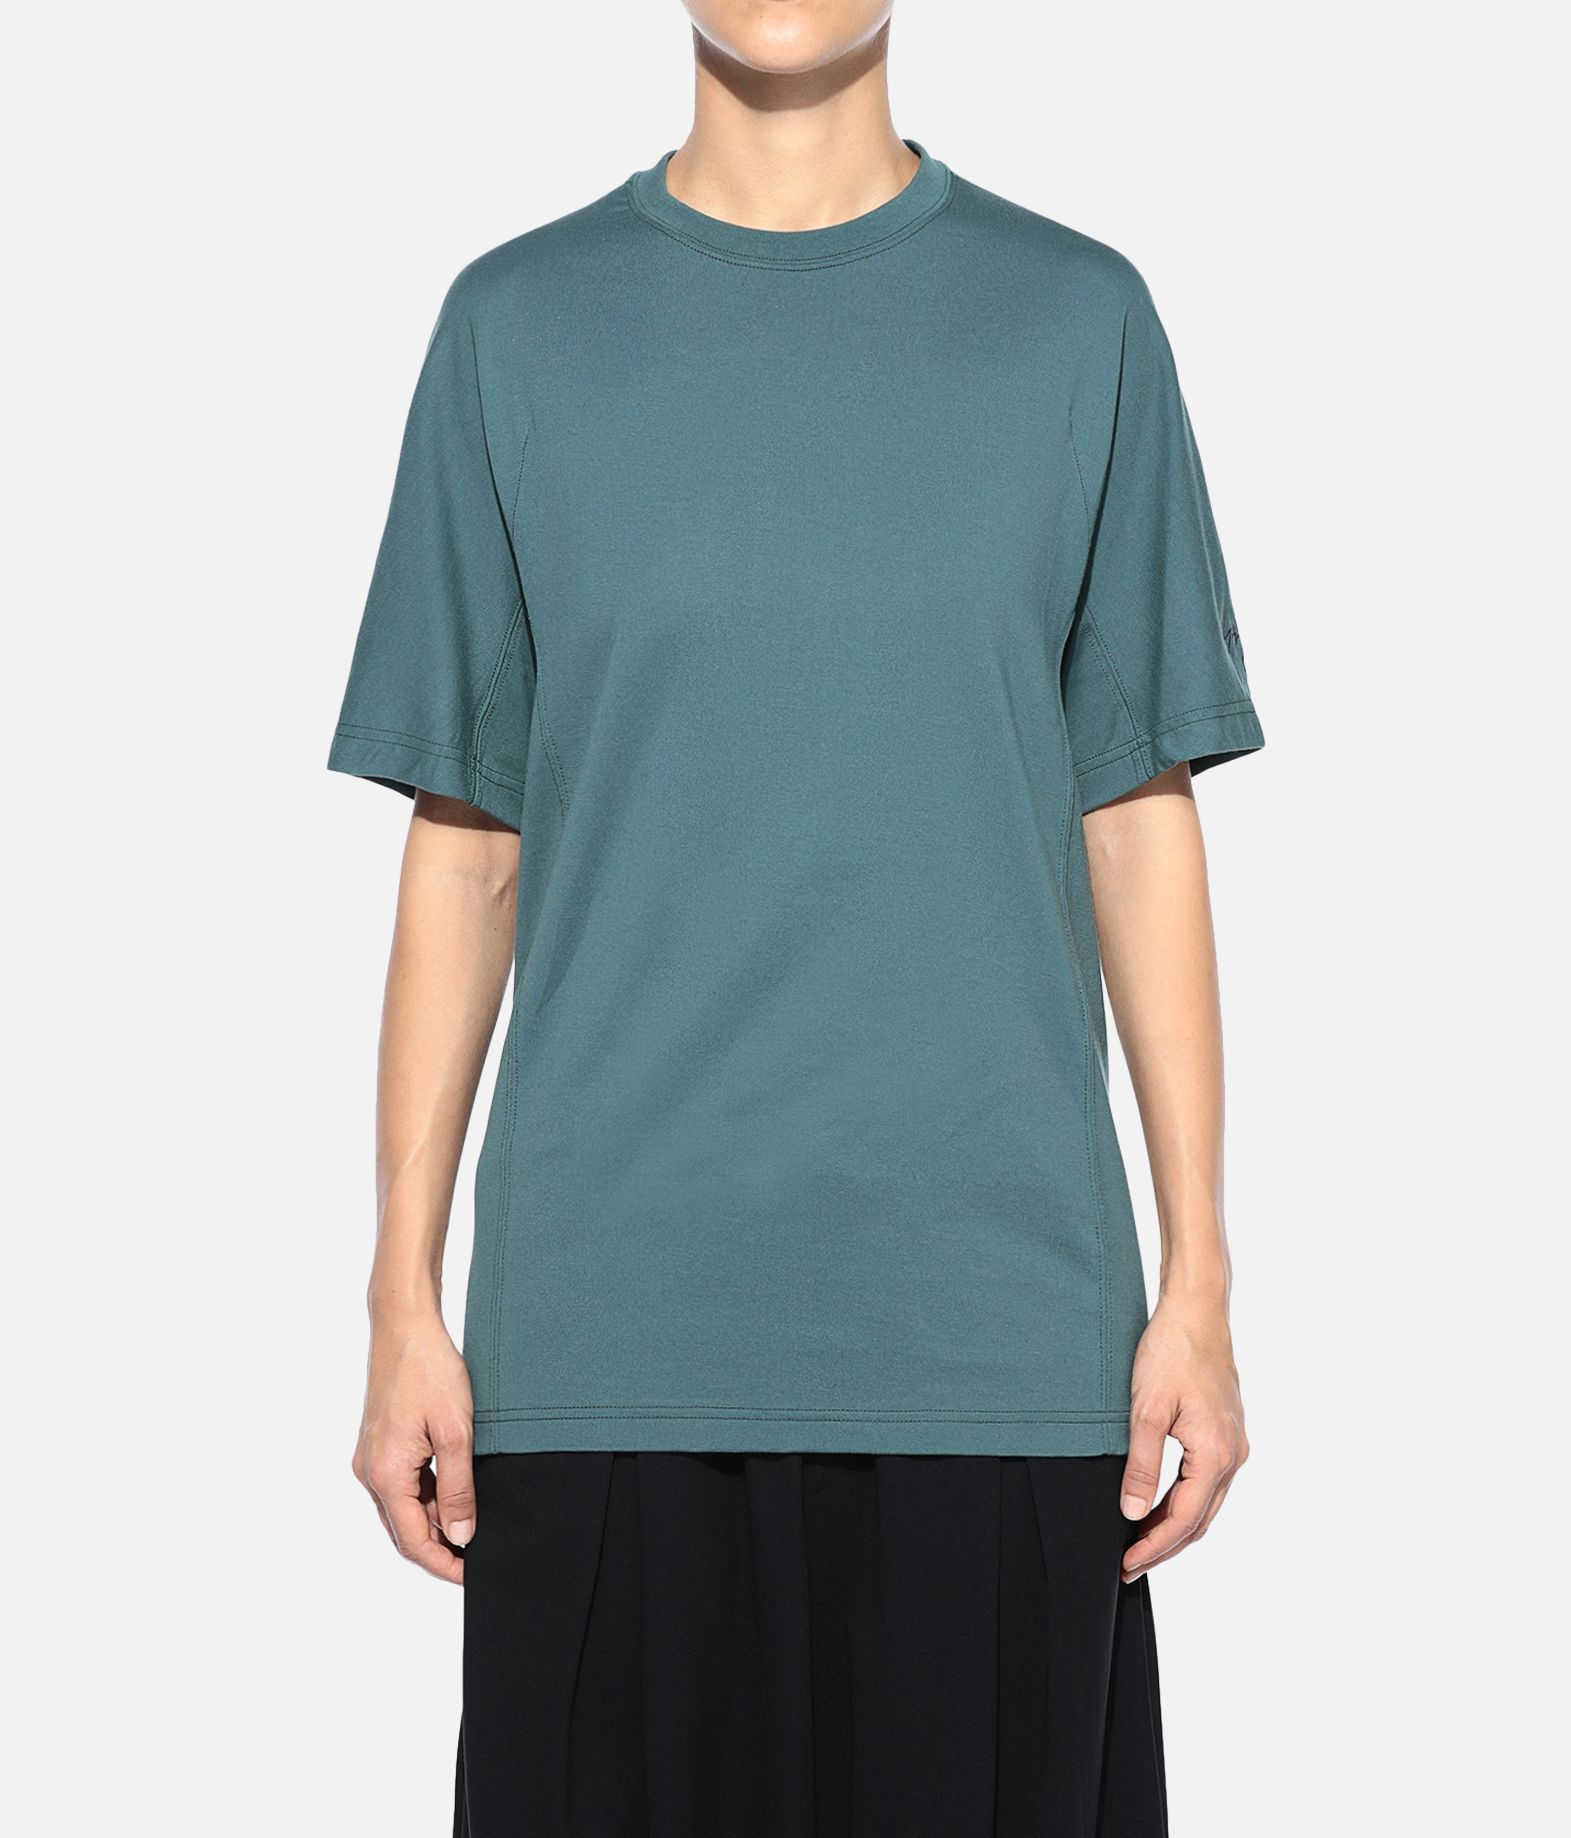 Y-3 Y-3 New Classic Tee  Short sleeve t-shirt Woman r